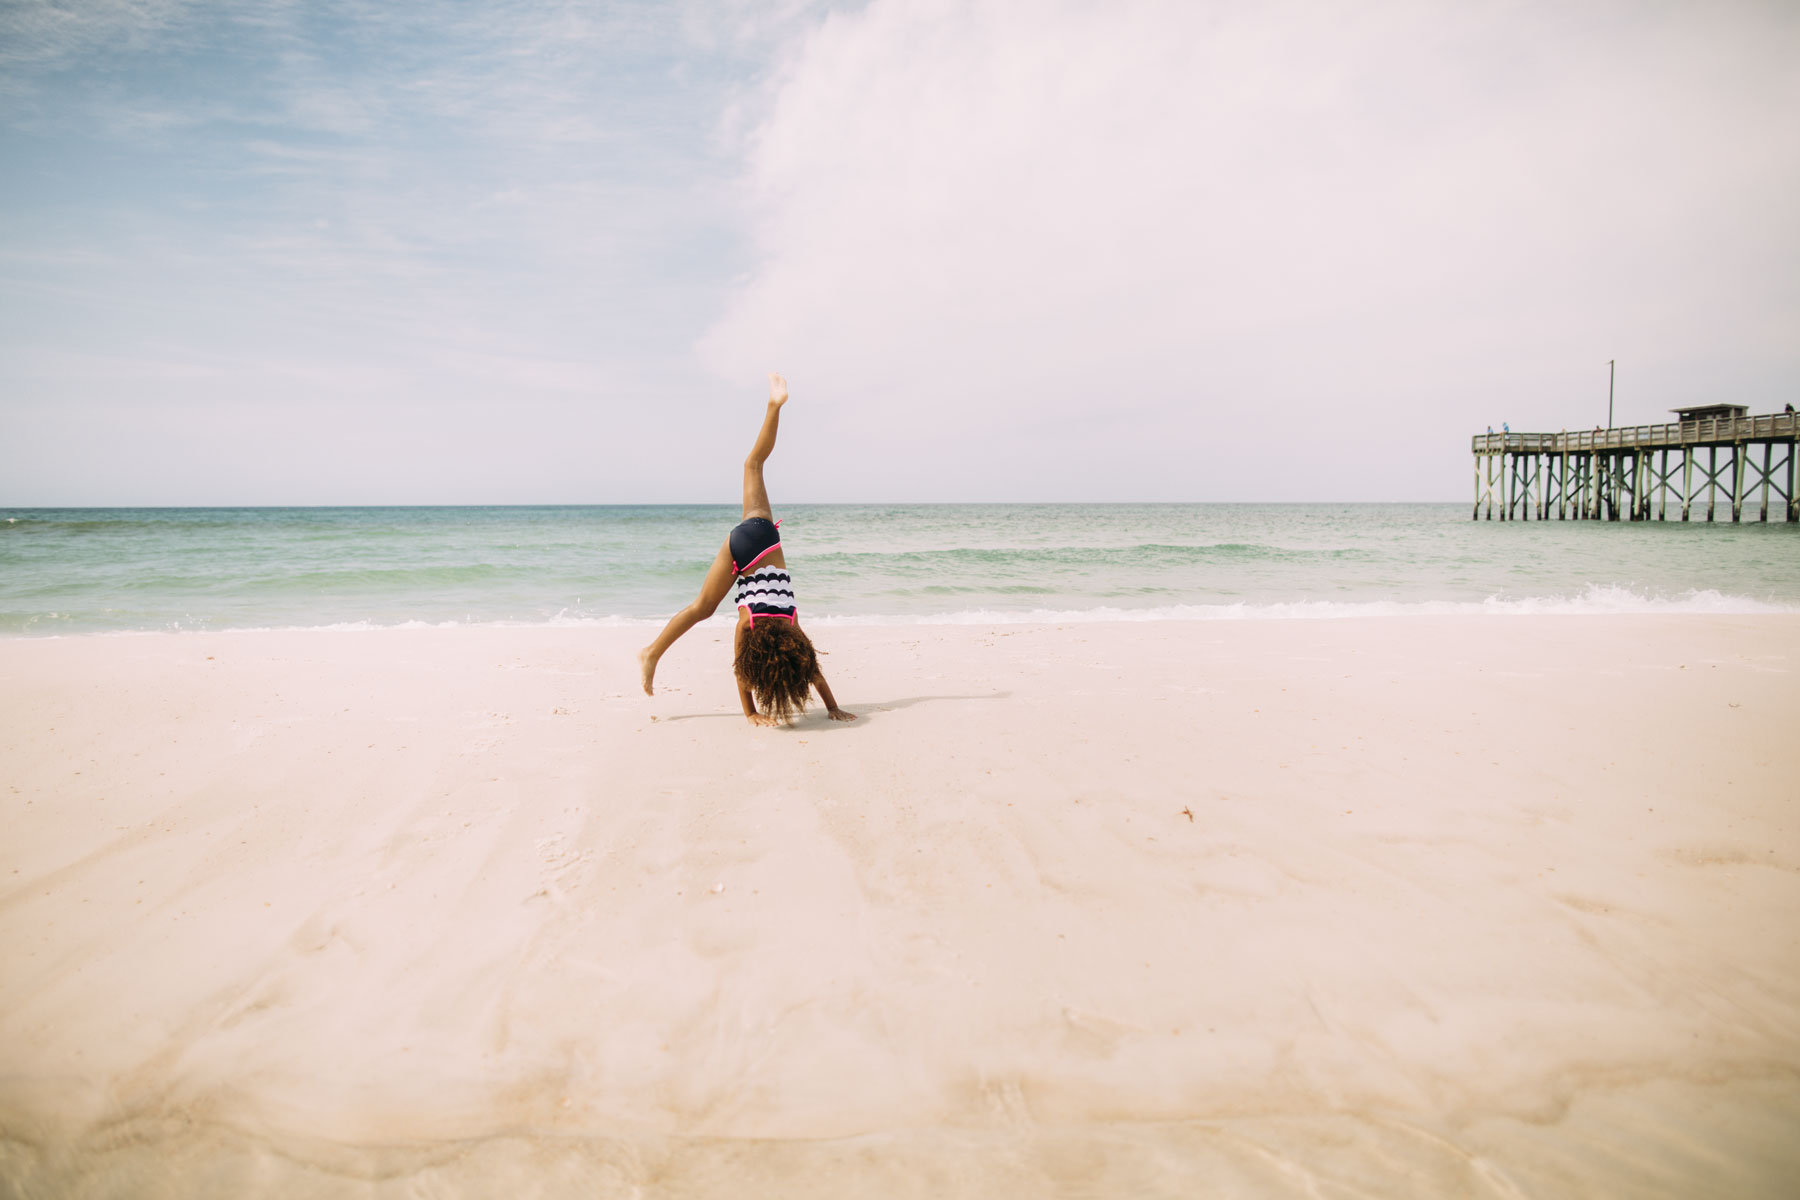 Girl Doing Cartwheels on beach